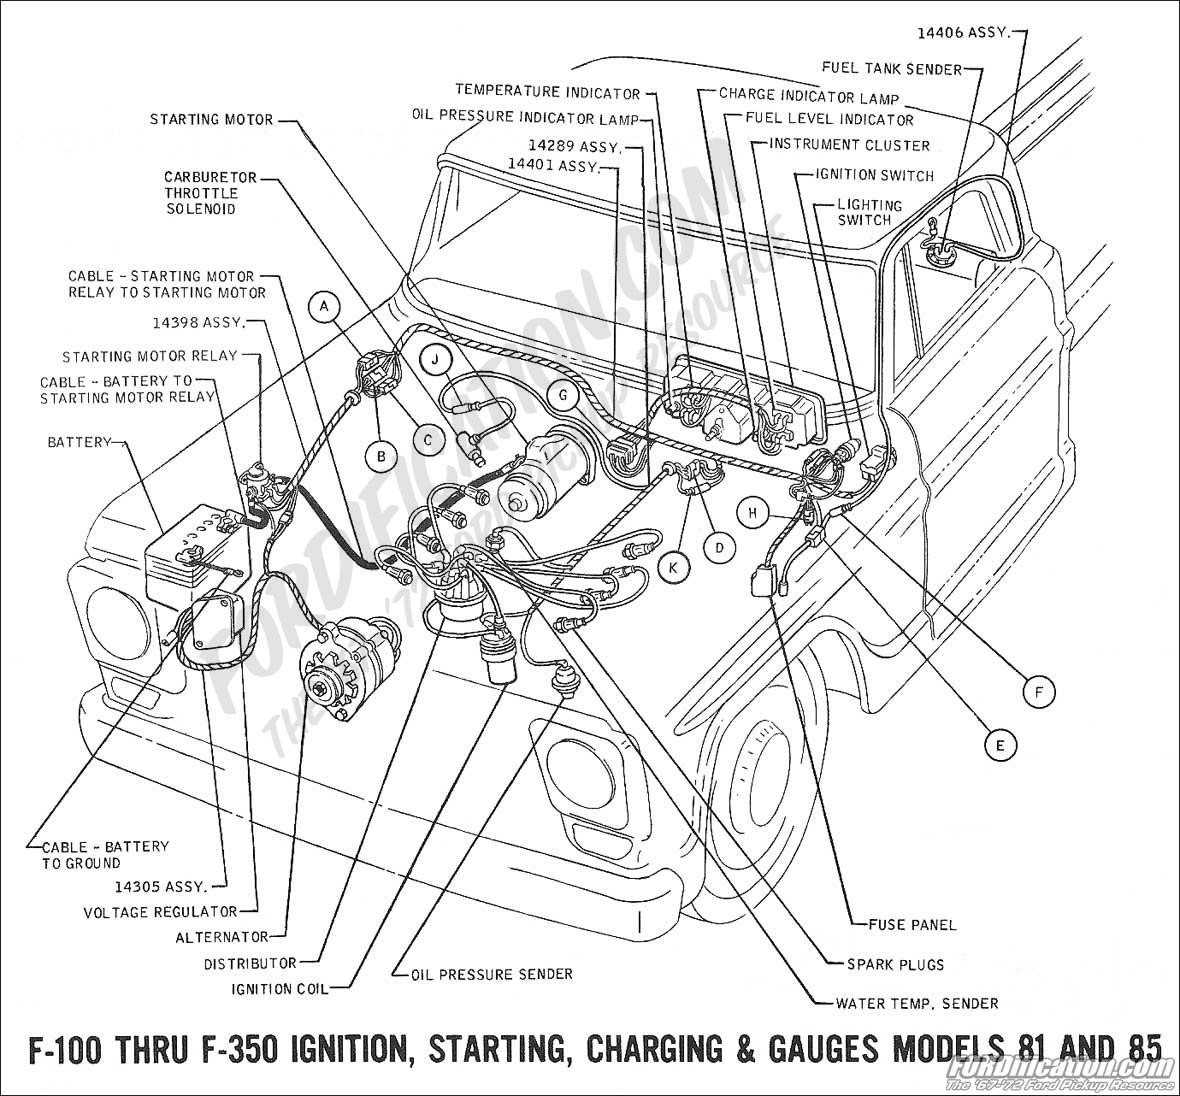 wiring 1969charging 1969 ford f100 wiring diagram 1969 chevrolet impala wiring diagram 1969 mustang ignition wiring diagram at virtualis.co